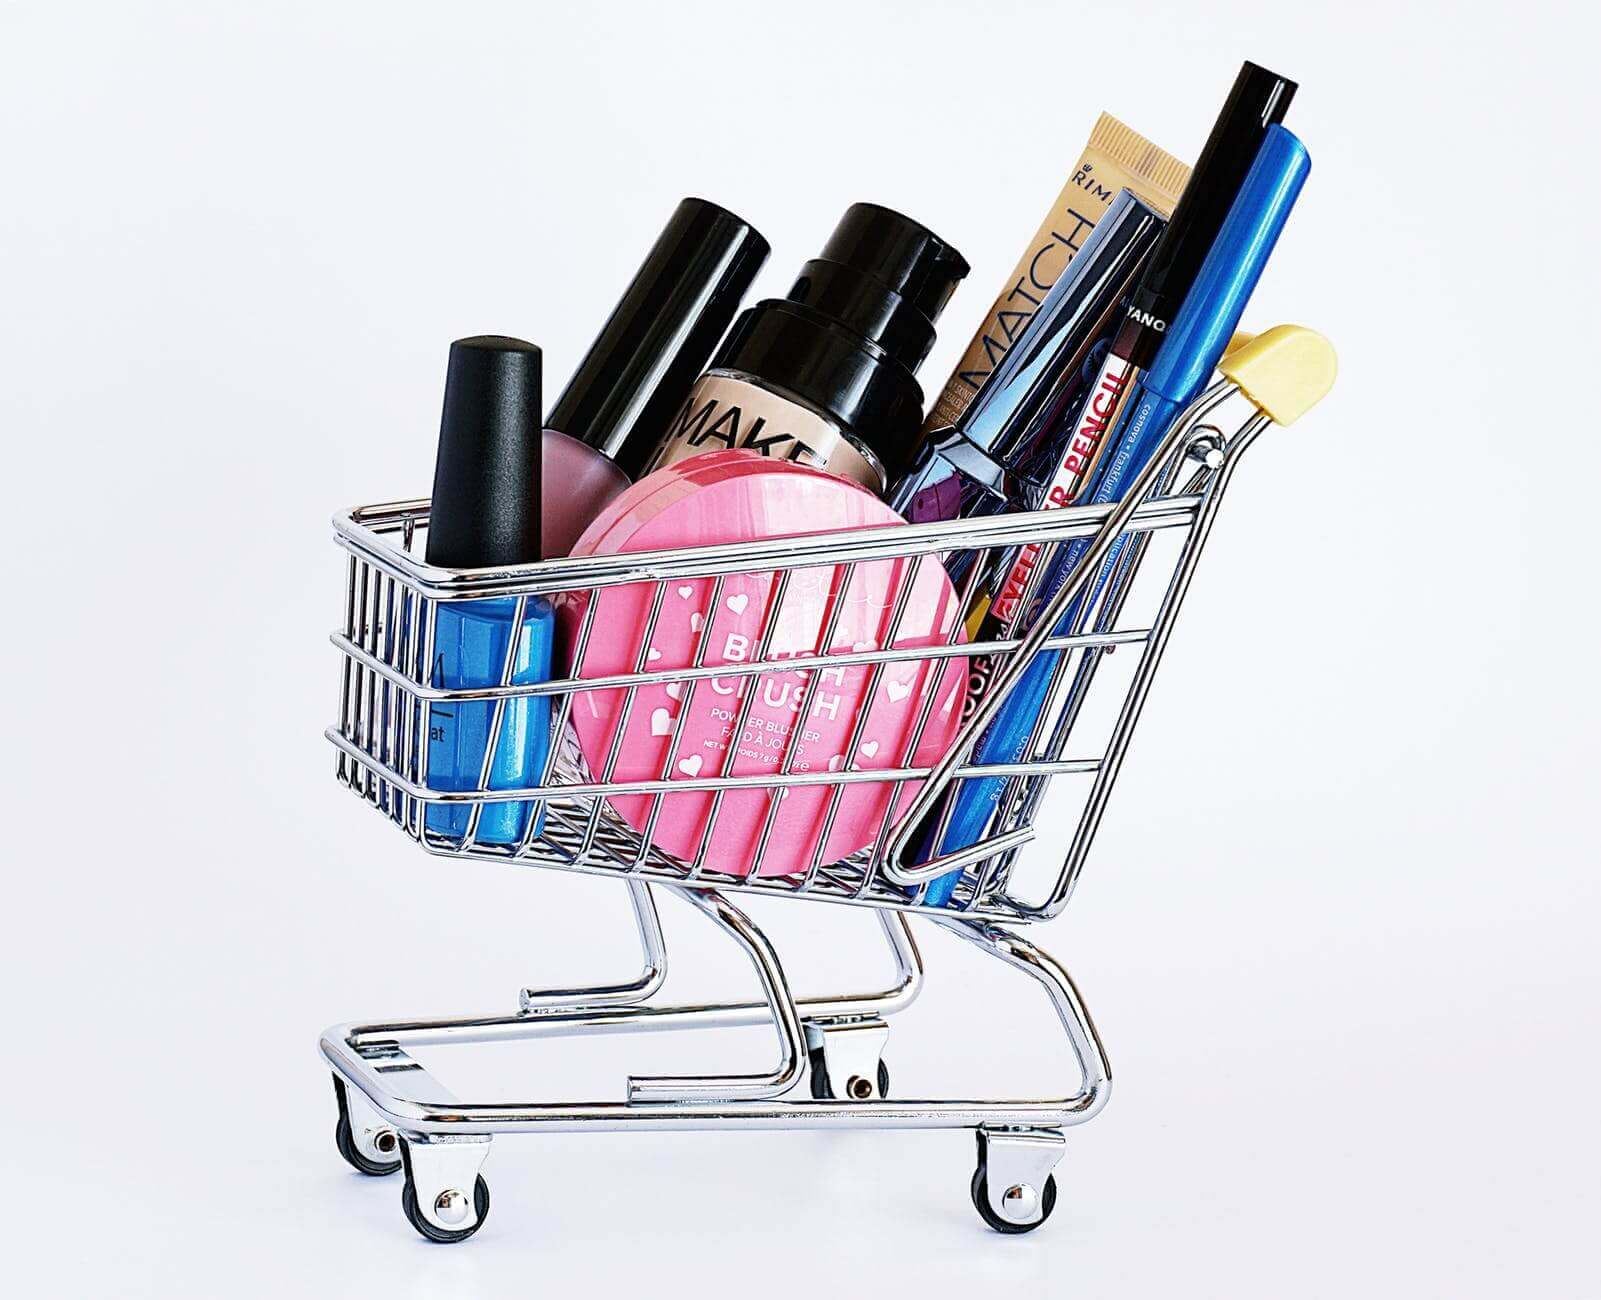 A small-sized metal shopping cart full of big-sized make-up items.